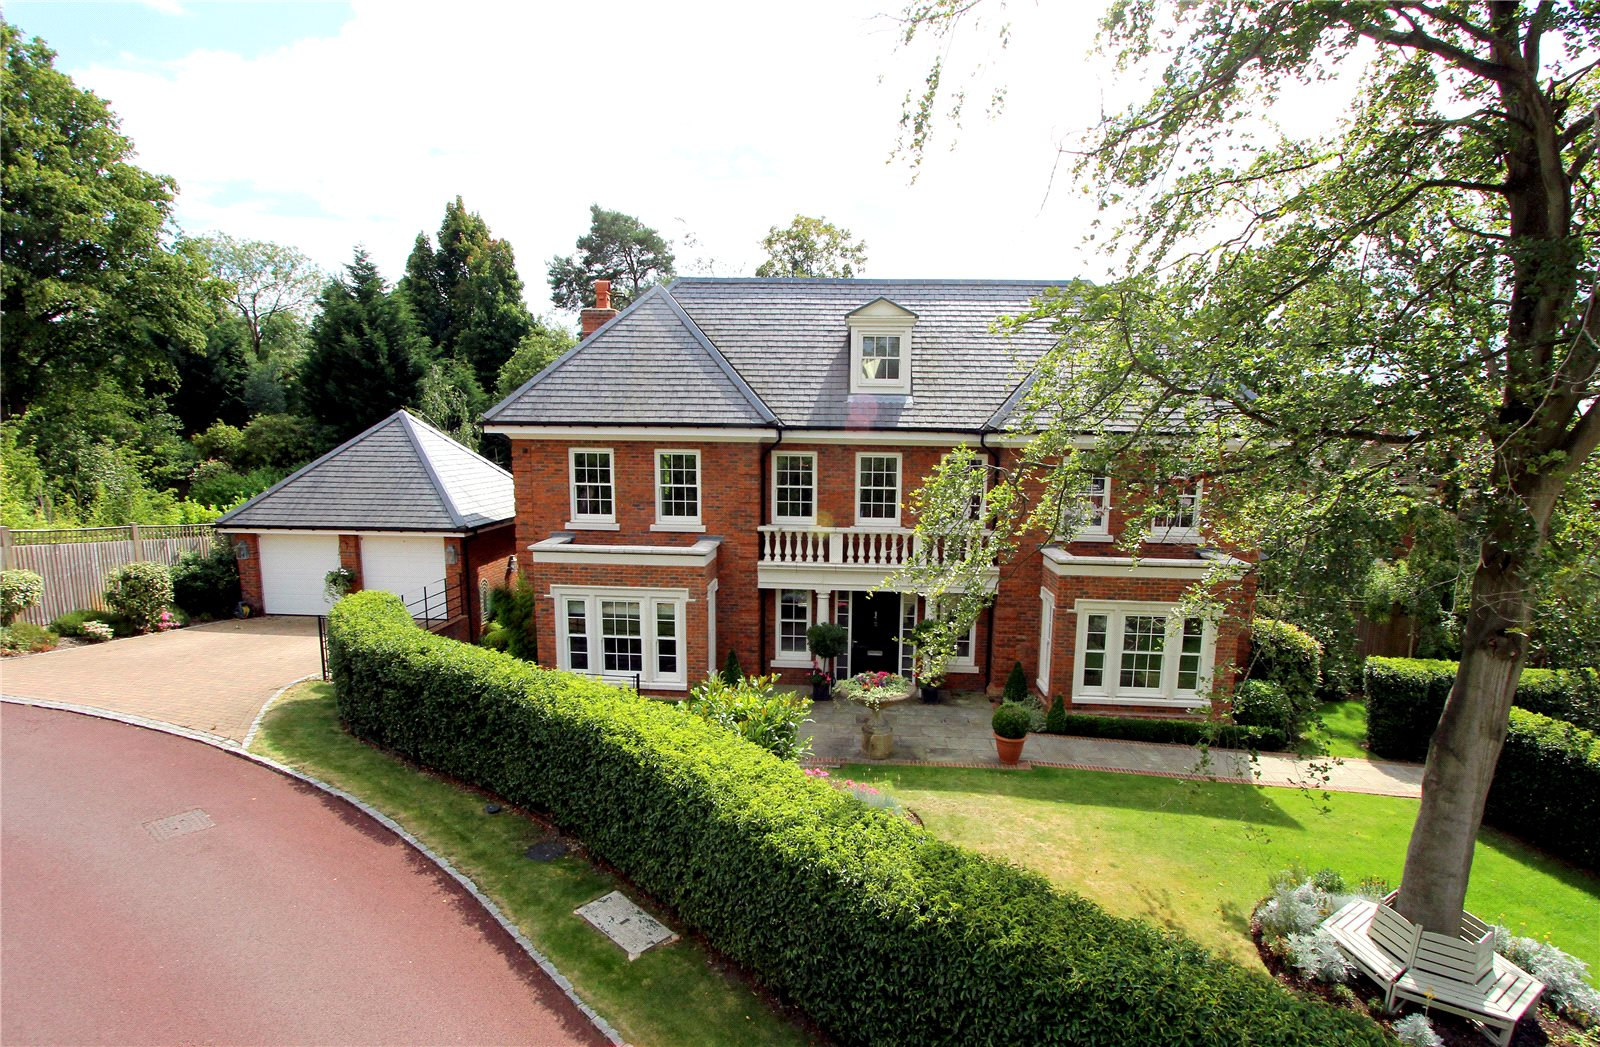 Tek Ailelik Ev için Satış at Oak Wood Place, Gerrards Cross, Buckinghamshire, SL9 Gerrards Cross, Ingiltere